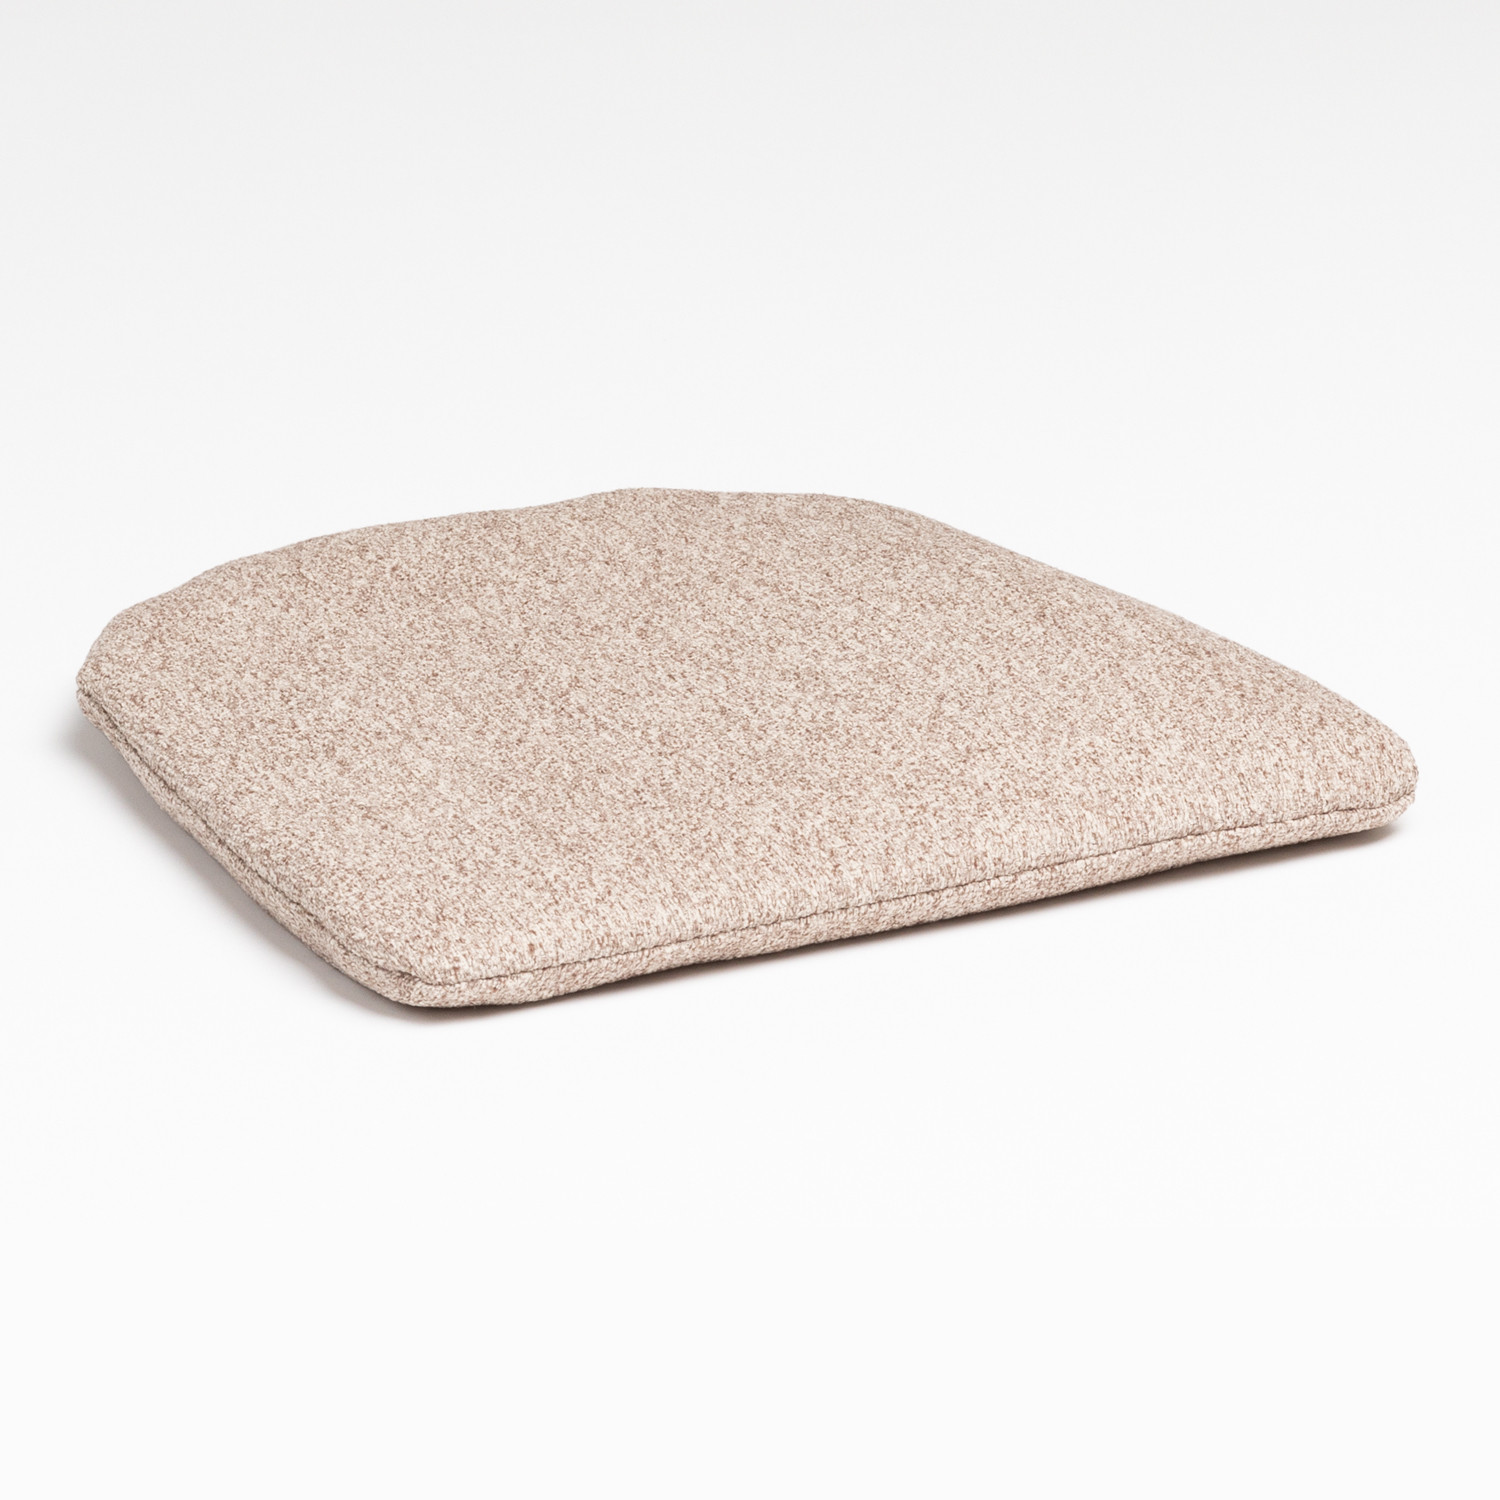 LIX Chair Terry Cloth Cushion, gallery image 1